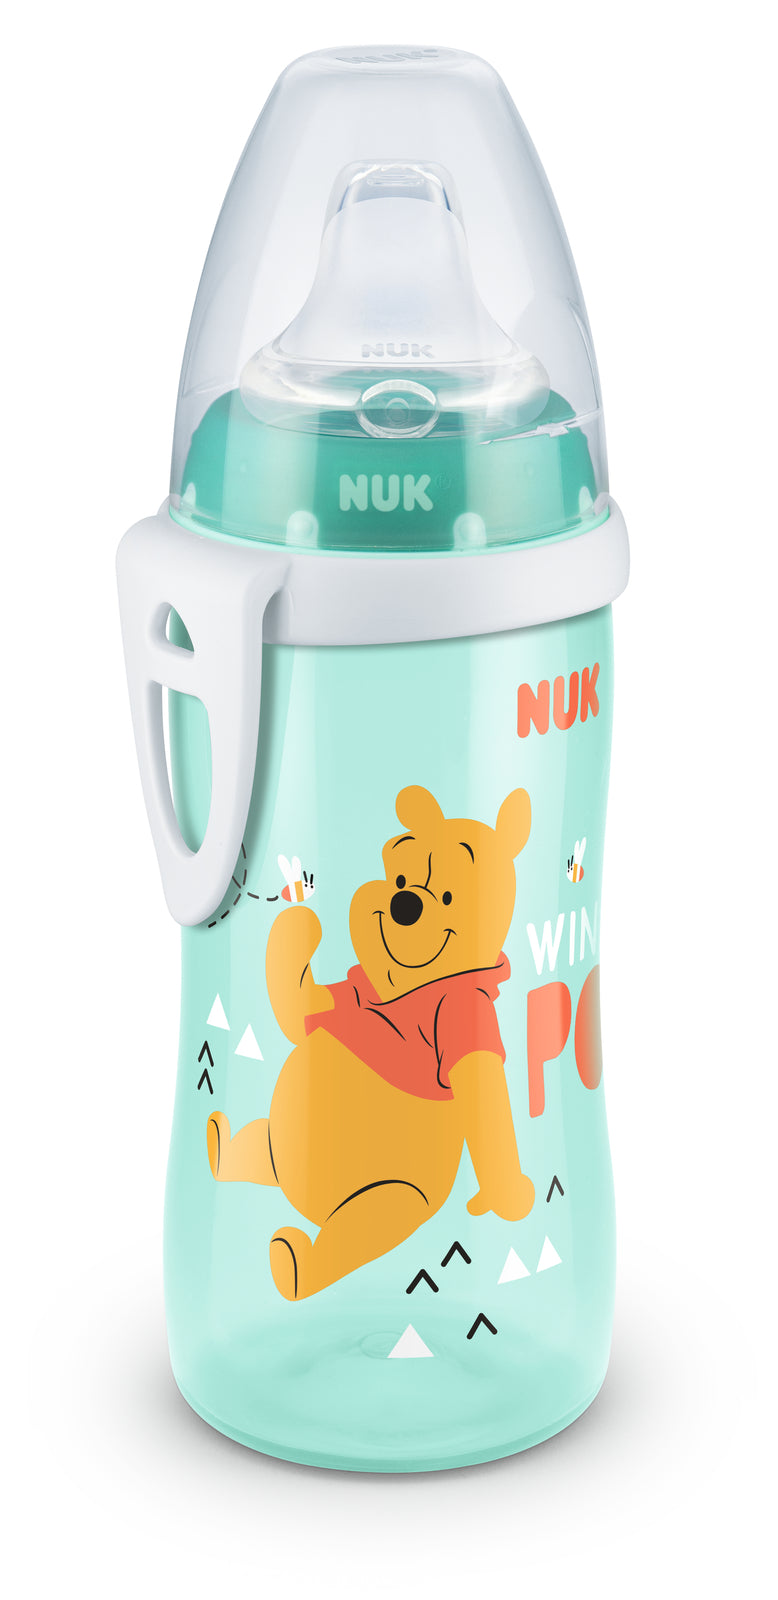 NUK: Active Cup with Silicone Spout 300ml - Winnie the Pooh (Assorted Designs)